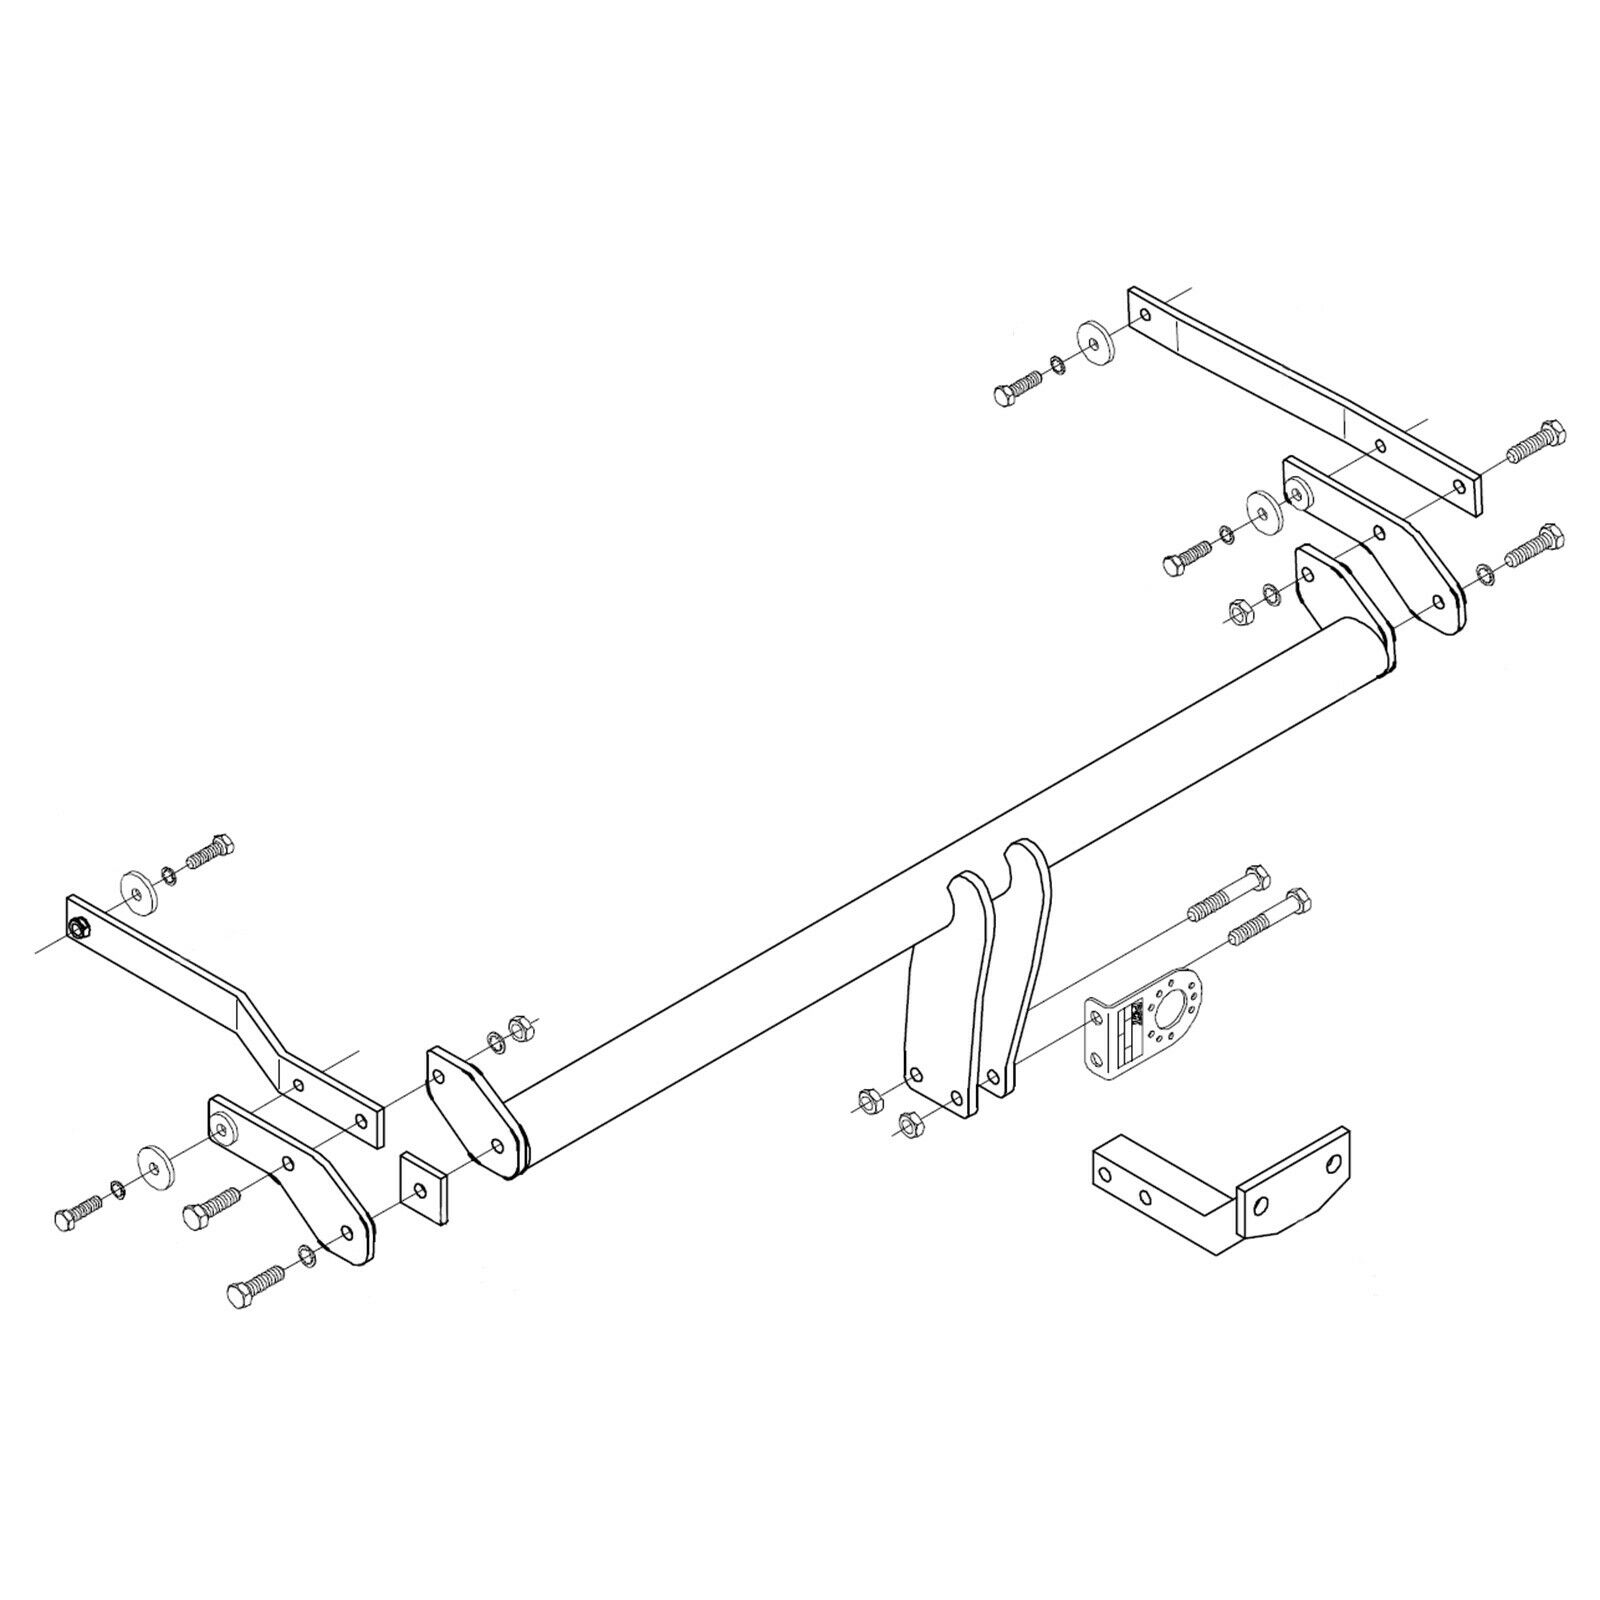 small resolution of details about towbar for renault megane iii 5 door hatchback 2008 2016 flange tow bar